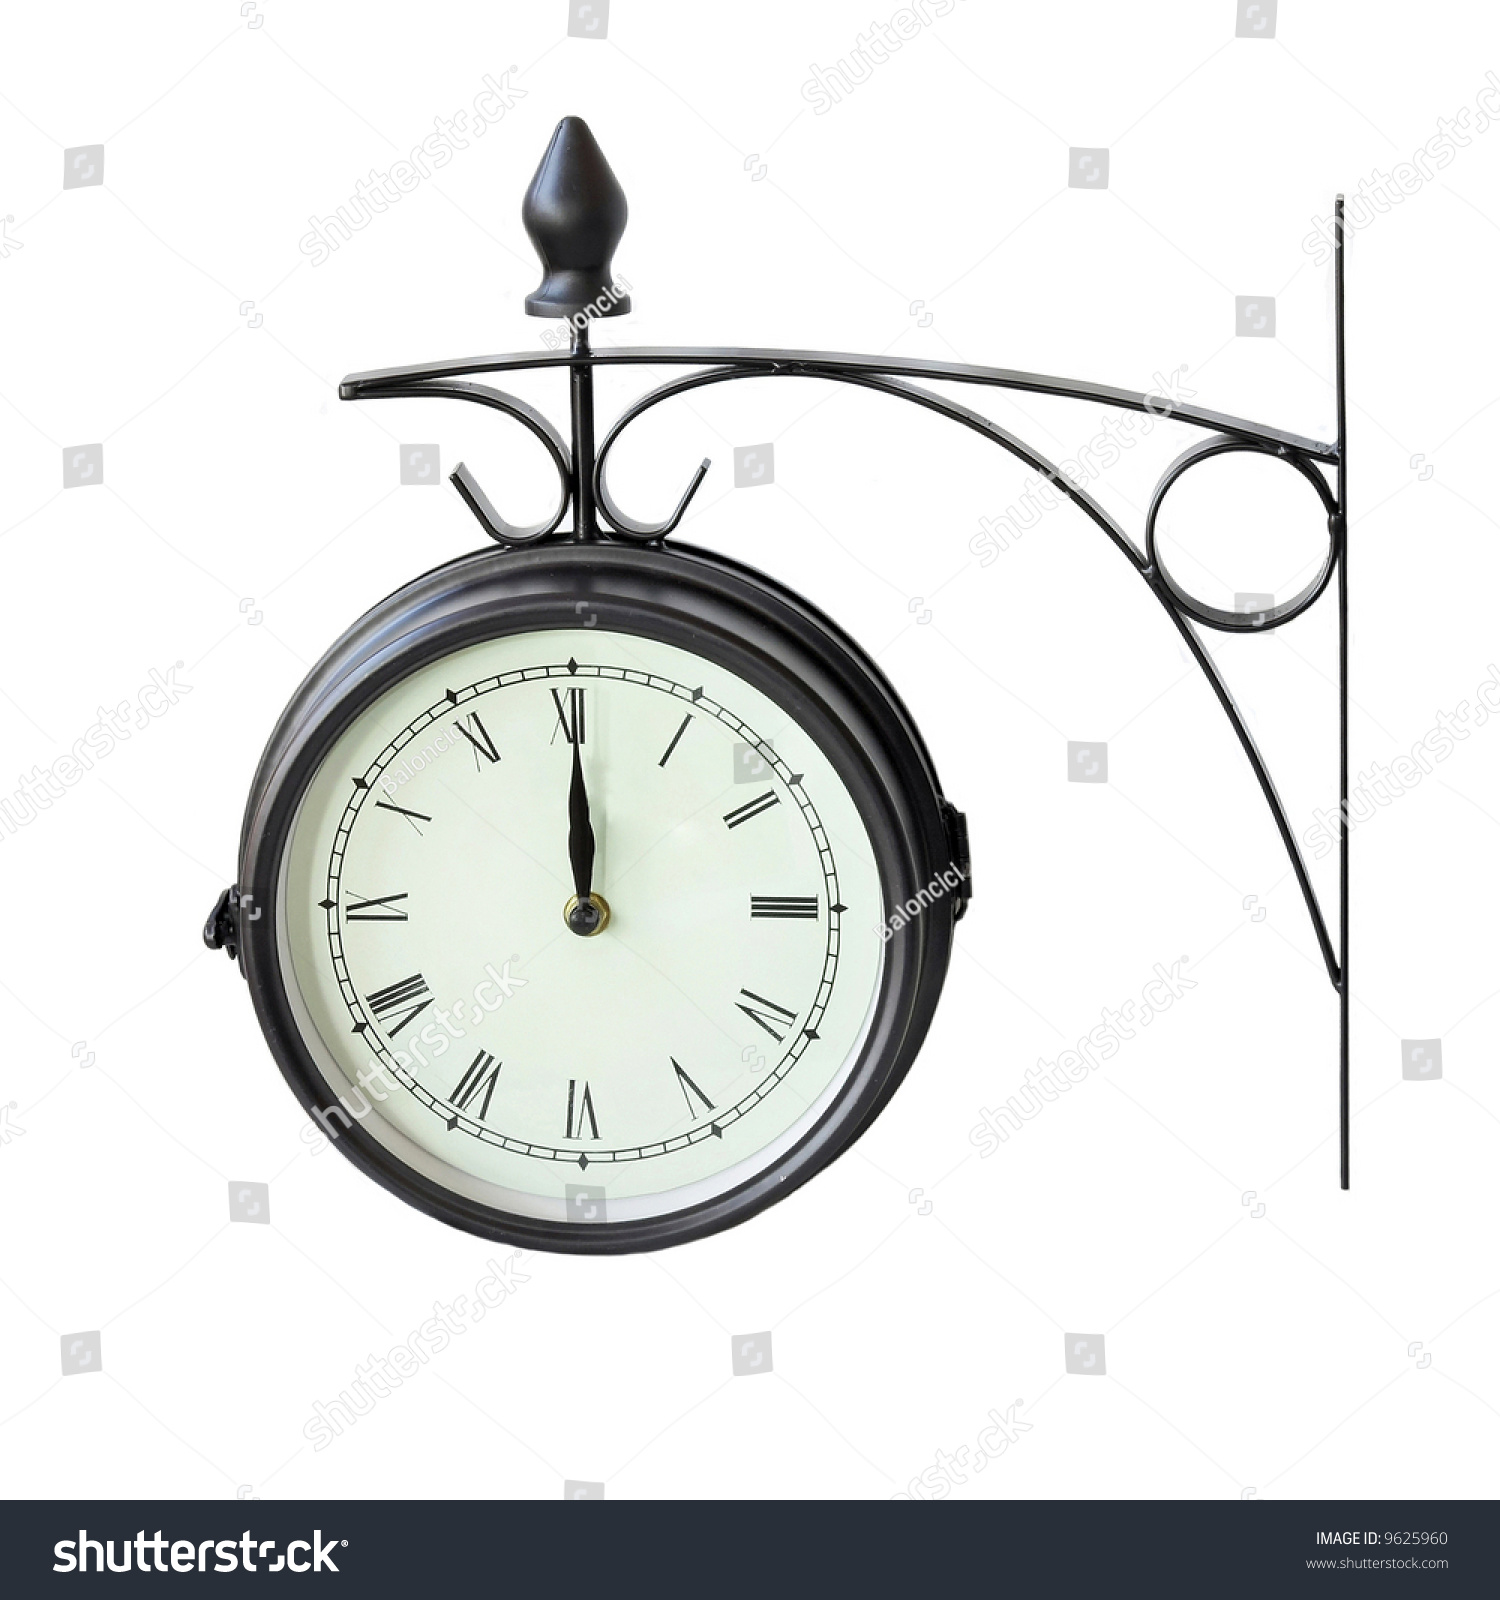 Stylish Digital Clock Old Style Analog Clock With Roman Numbers Stock Photo